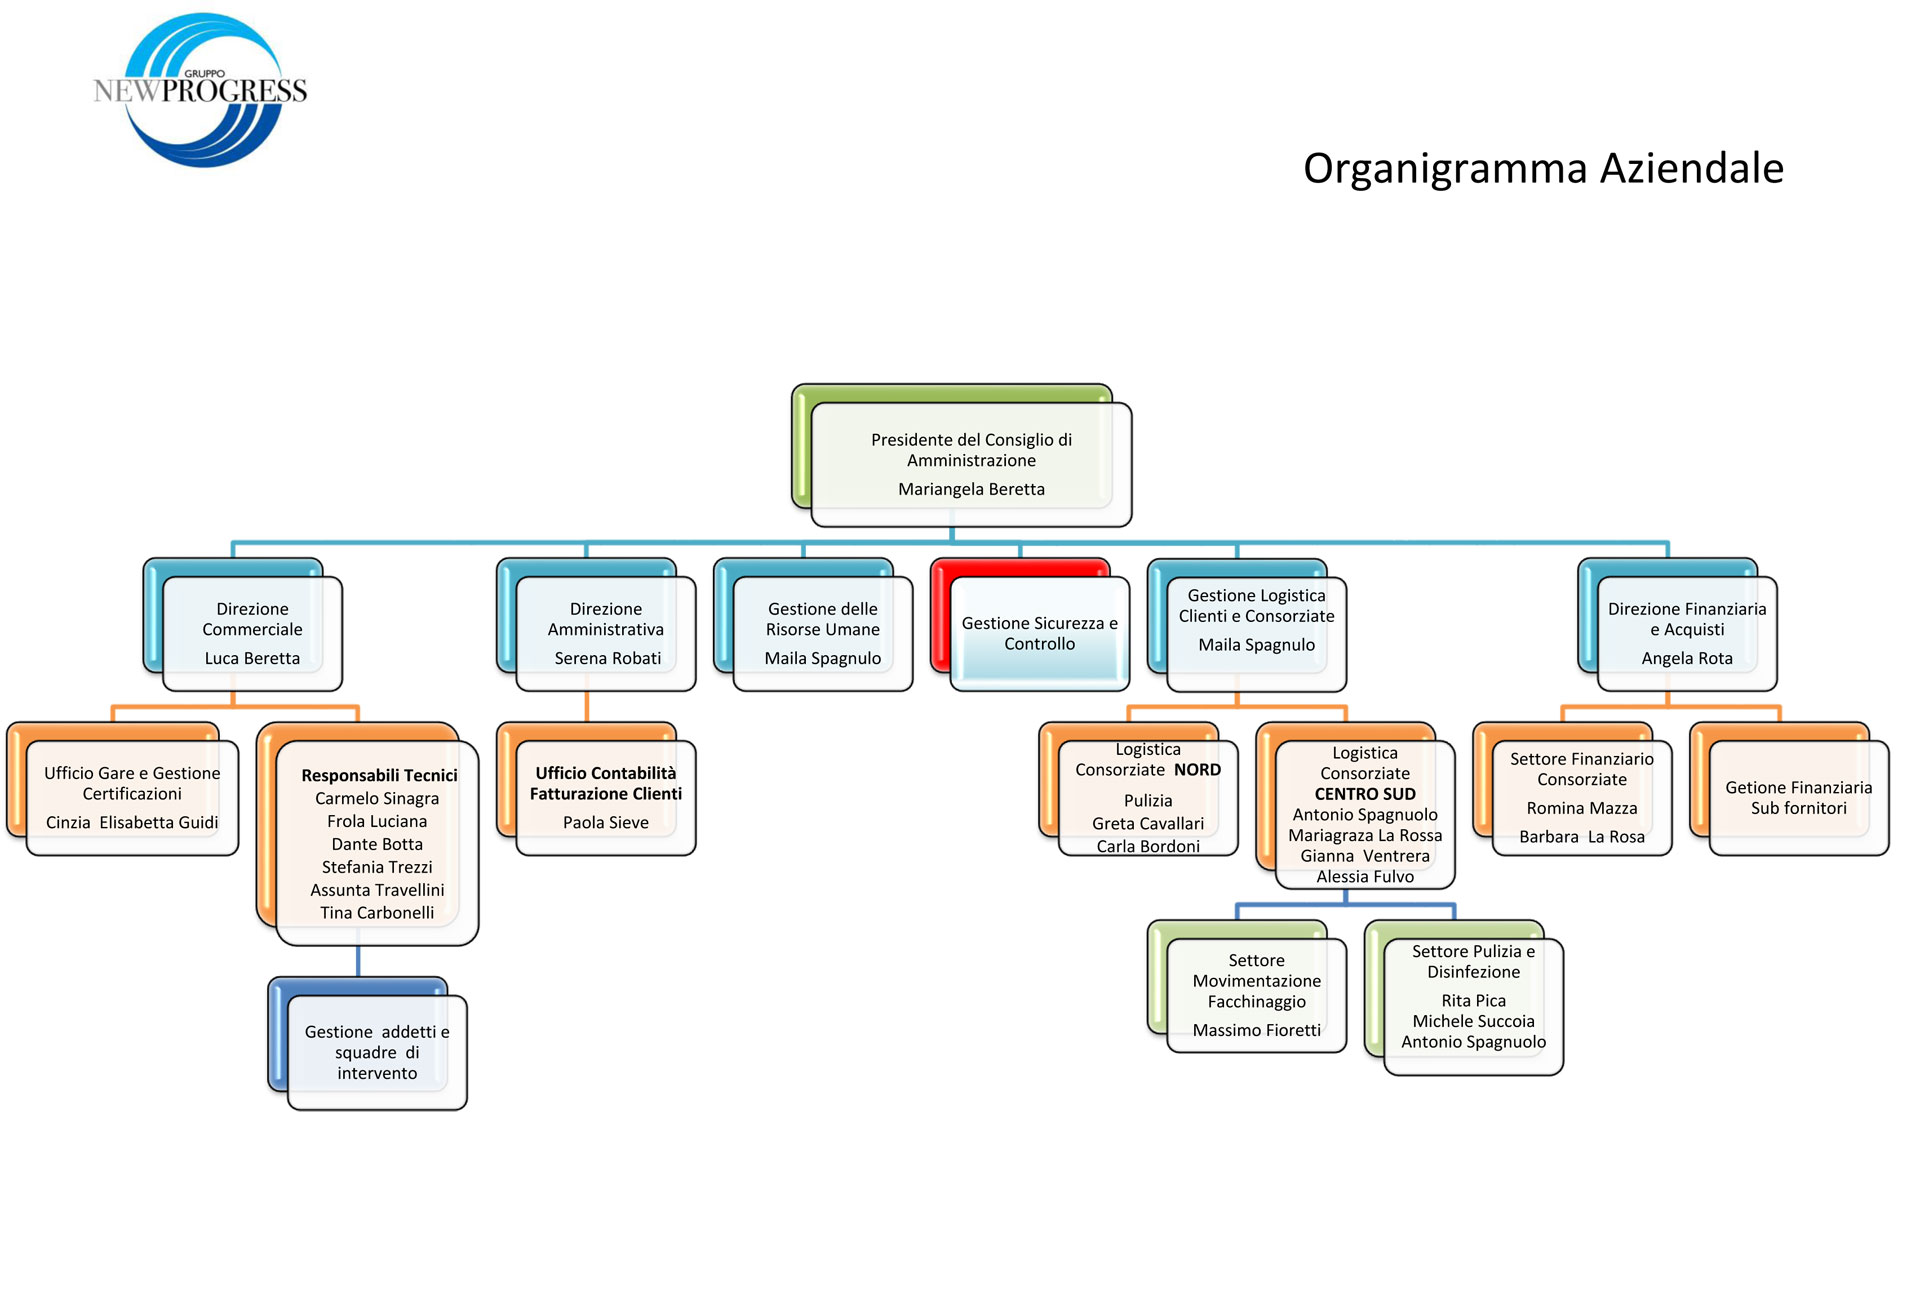 organigramma Gruppo New Progress